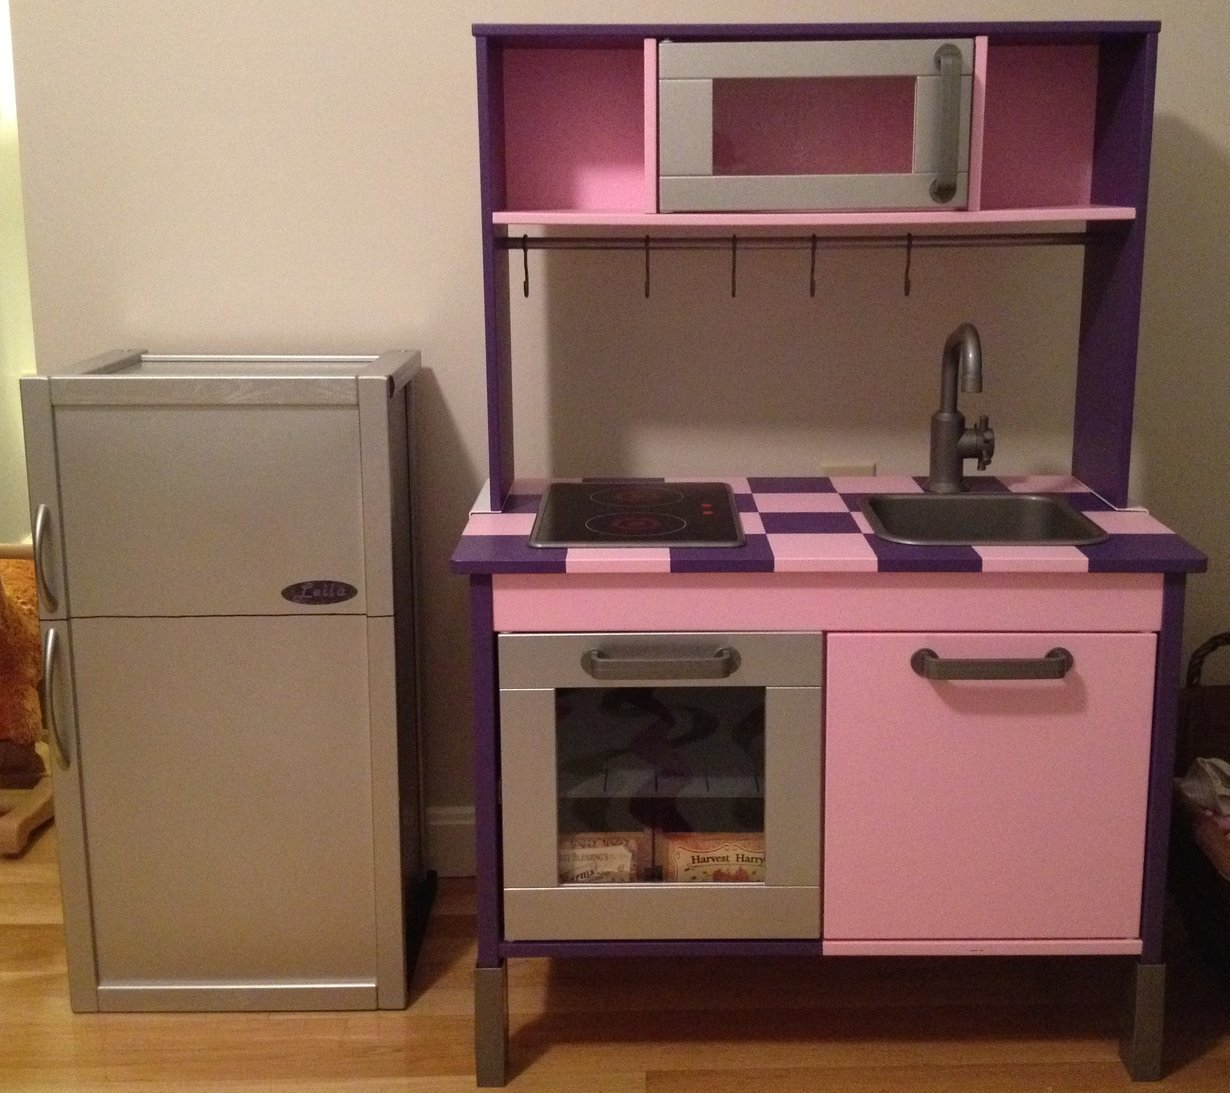 Duktig Kitchen Goes From Bland To Bling Ikea Hackers